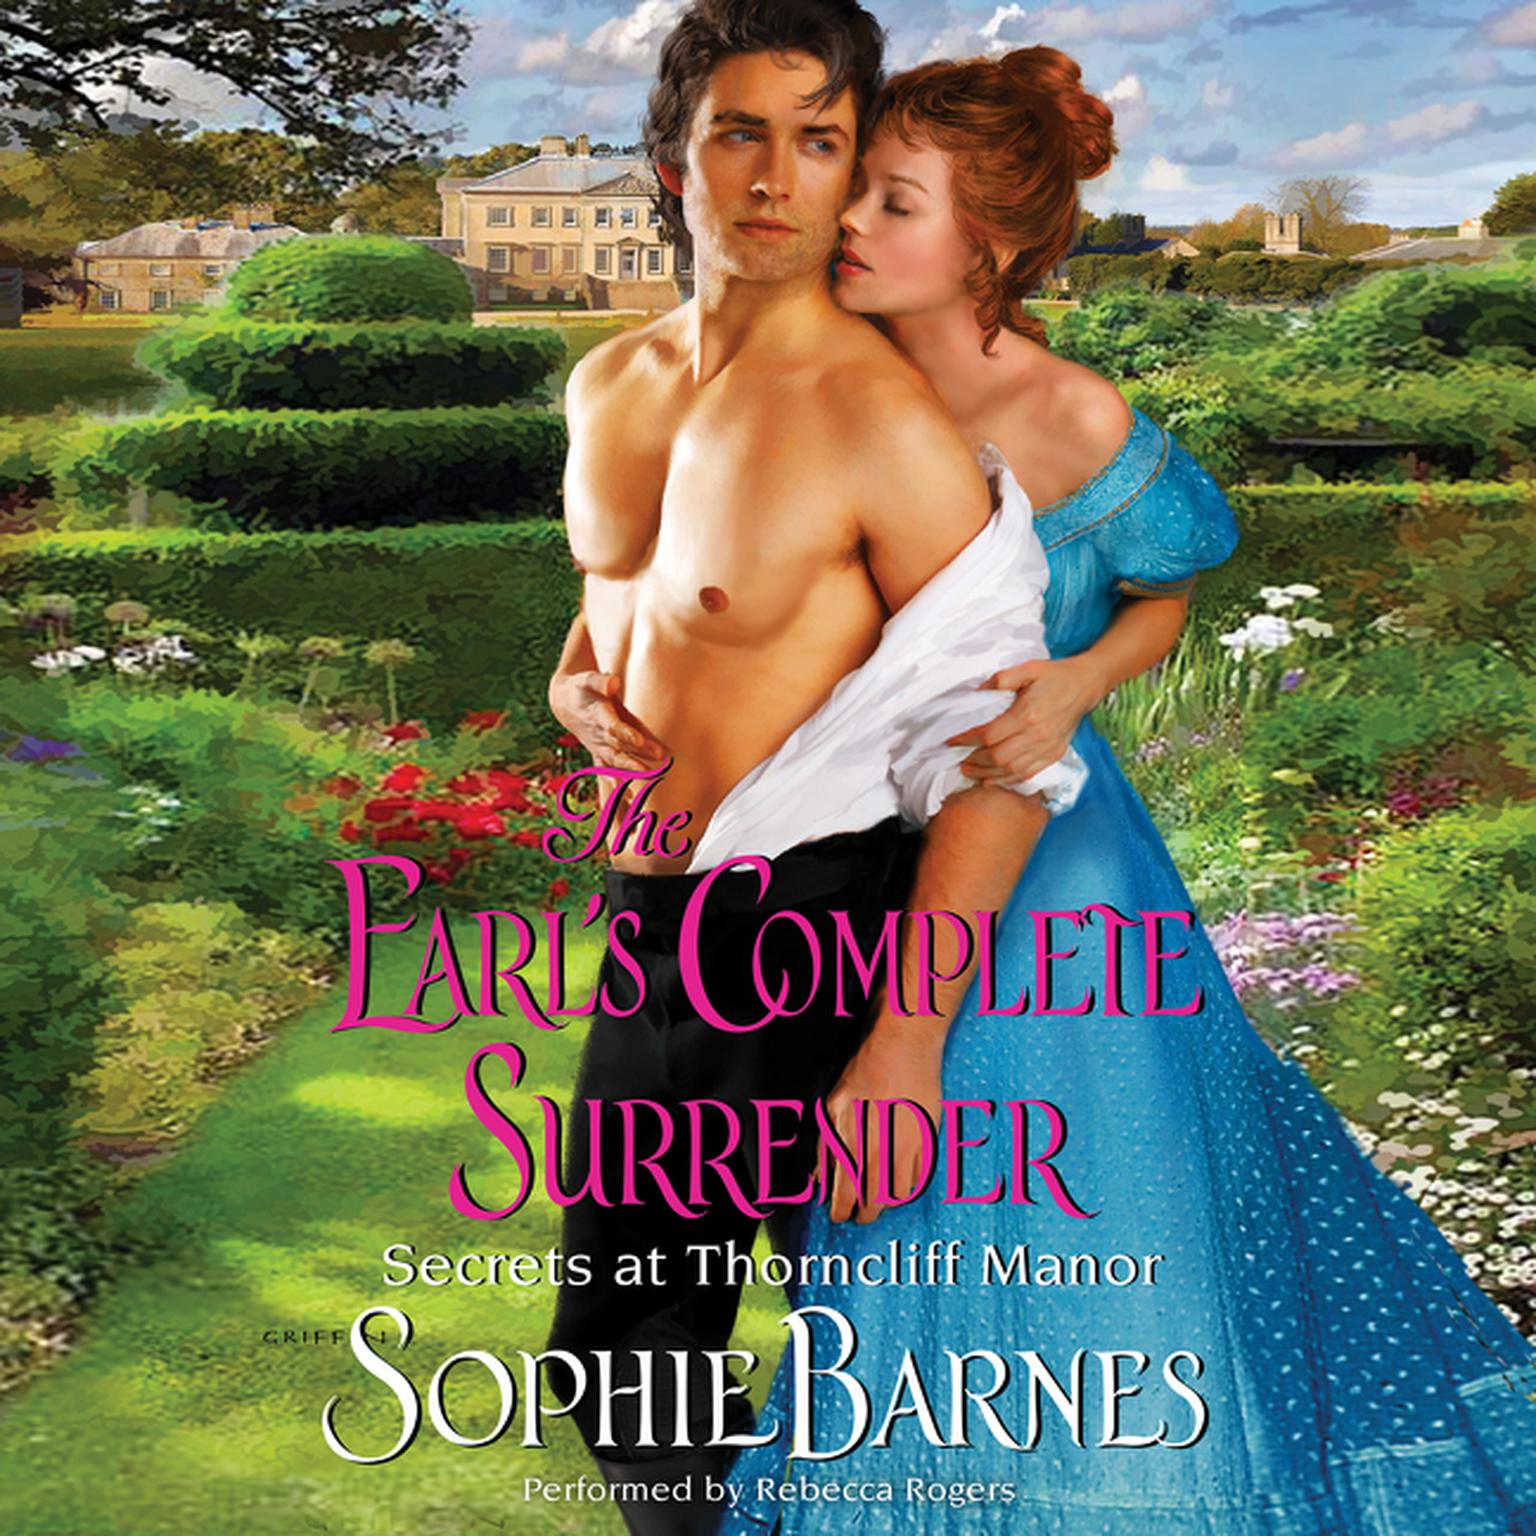 Printable The Earl's Complete Surrender: Secrets at Thorncliff Manor Audiobook Cover Art